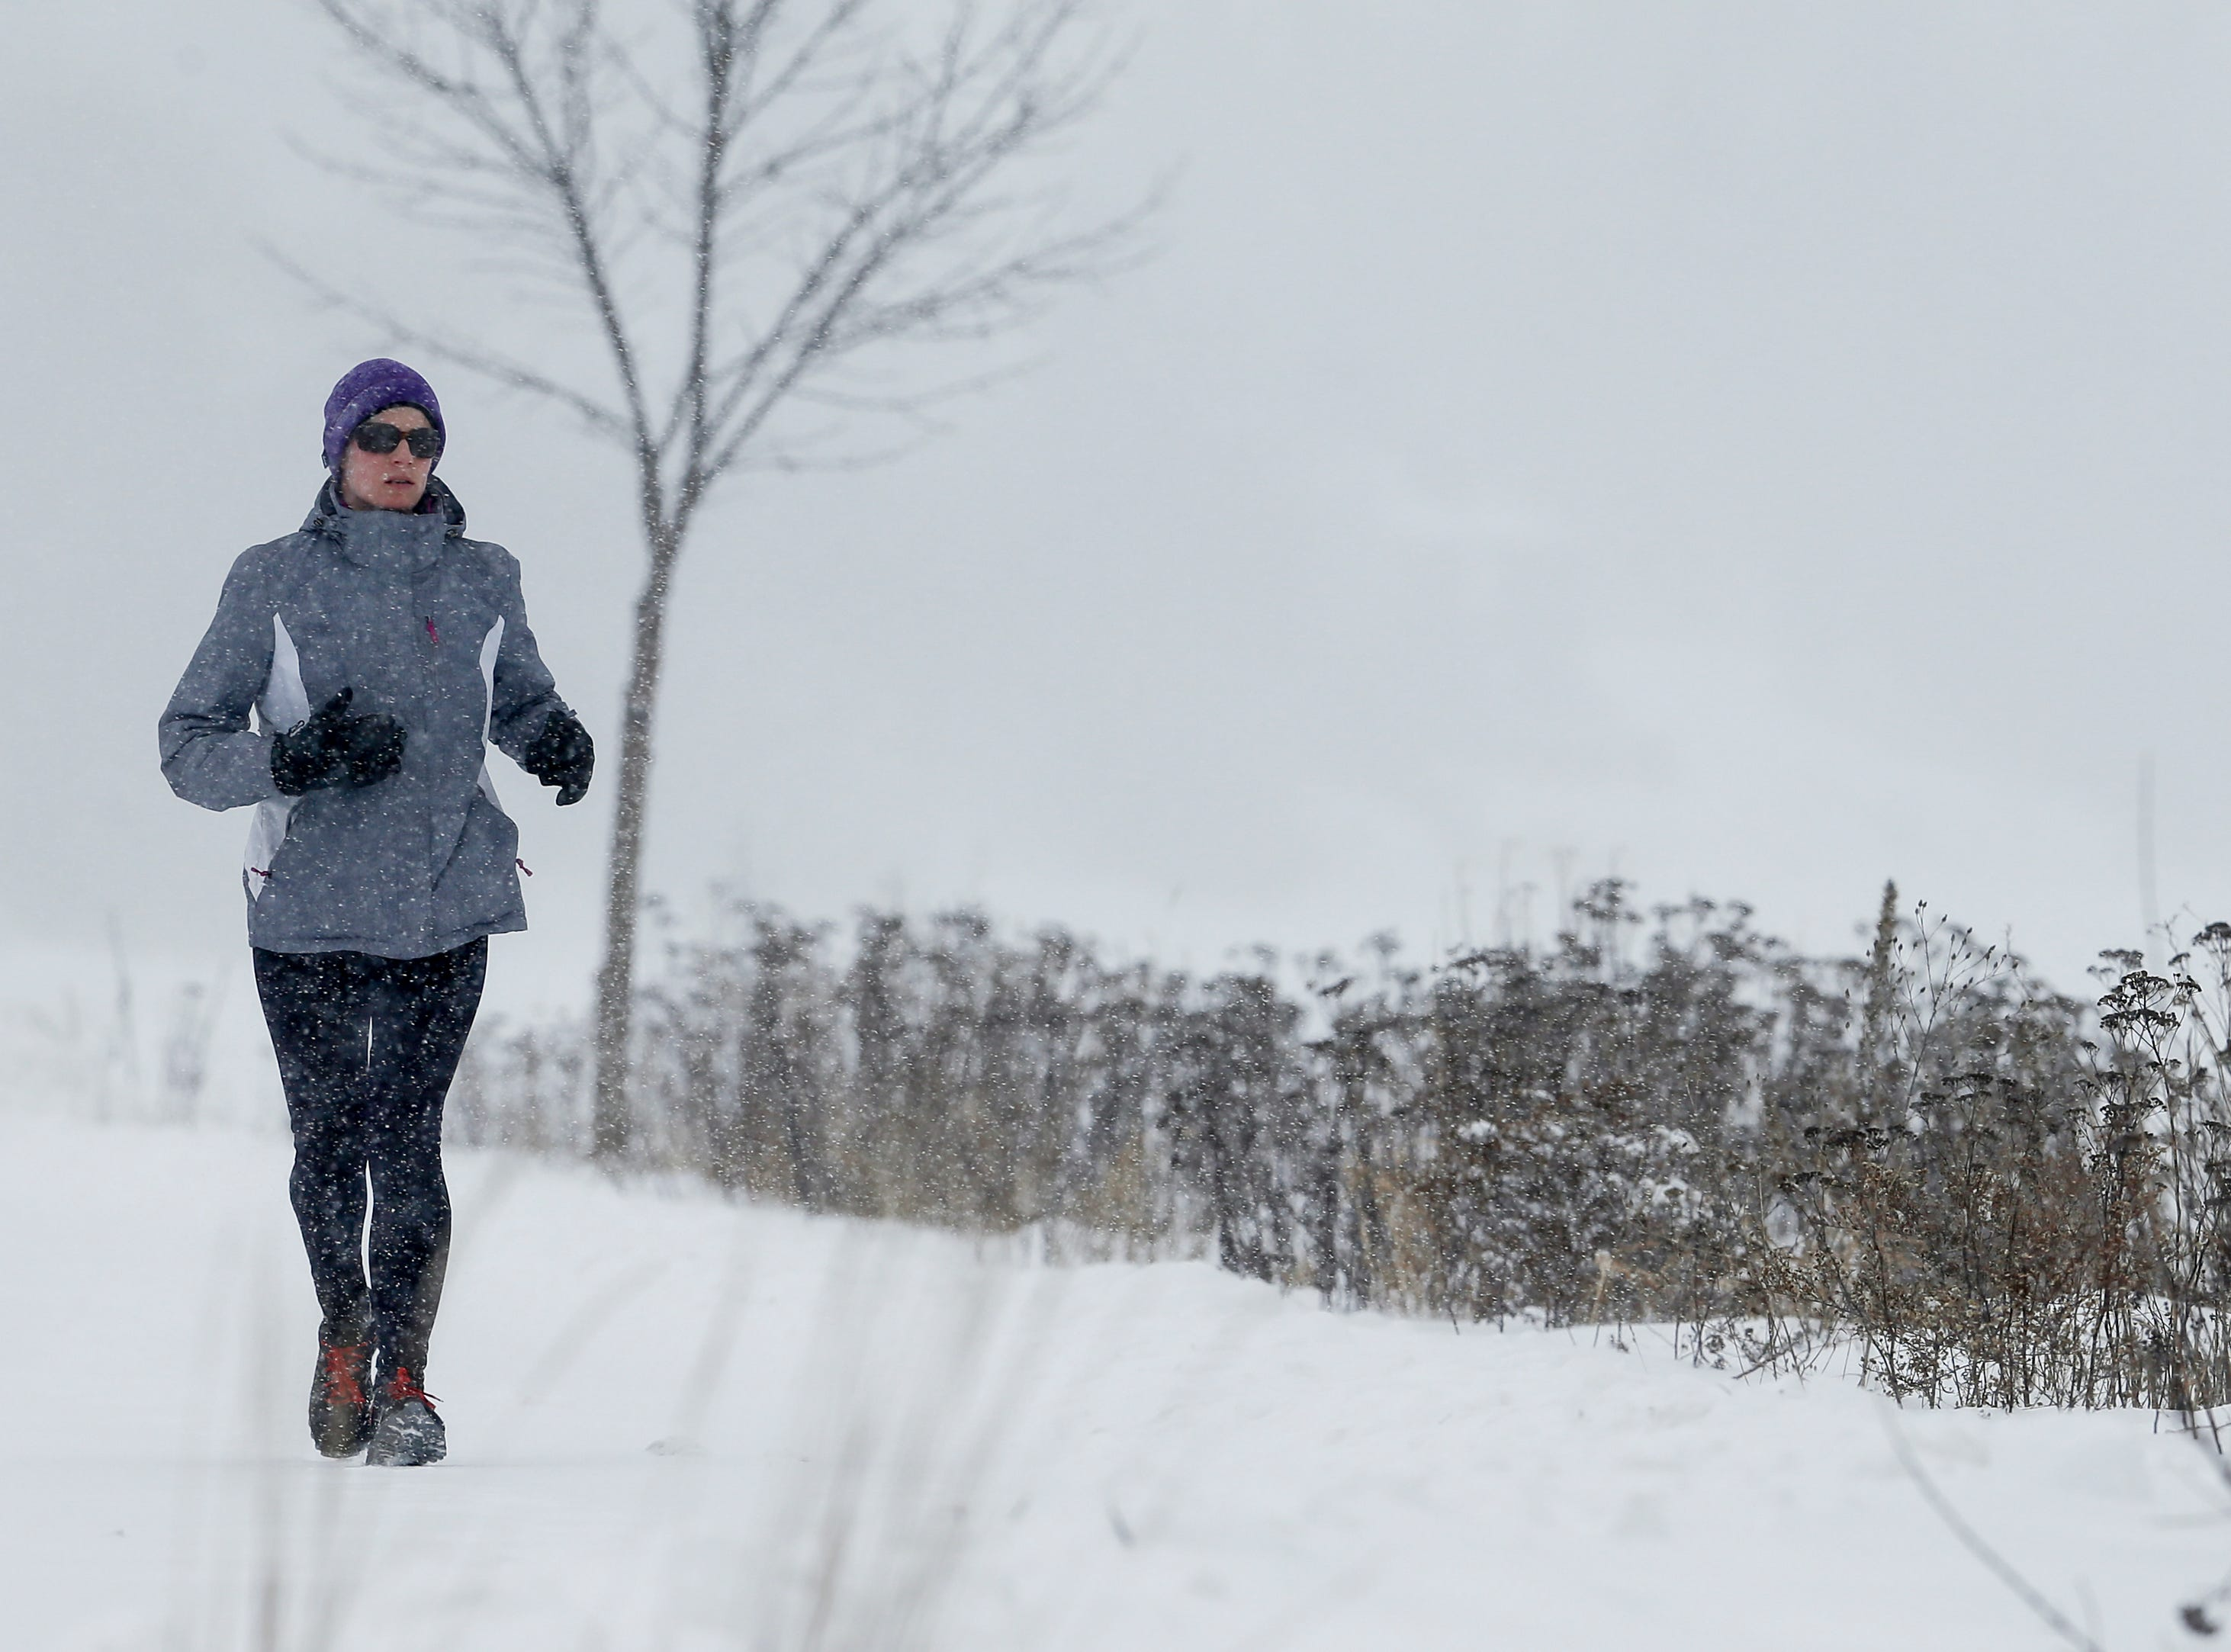 Molly Wall runs on the Mariners Trail along Lake Michigan during a snowstorm Wednesday, January 23, 2019, in Manitowoc, Wis. Joshua Clark/USA TODAY NETWORK-Wisconsin